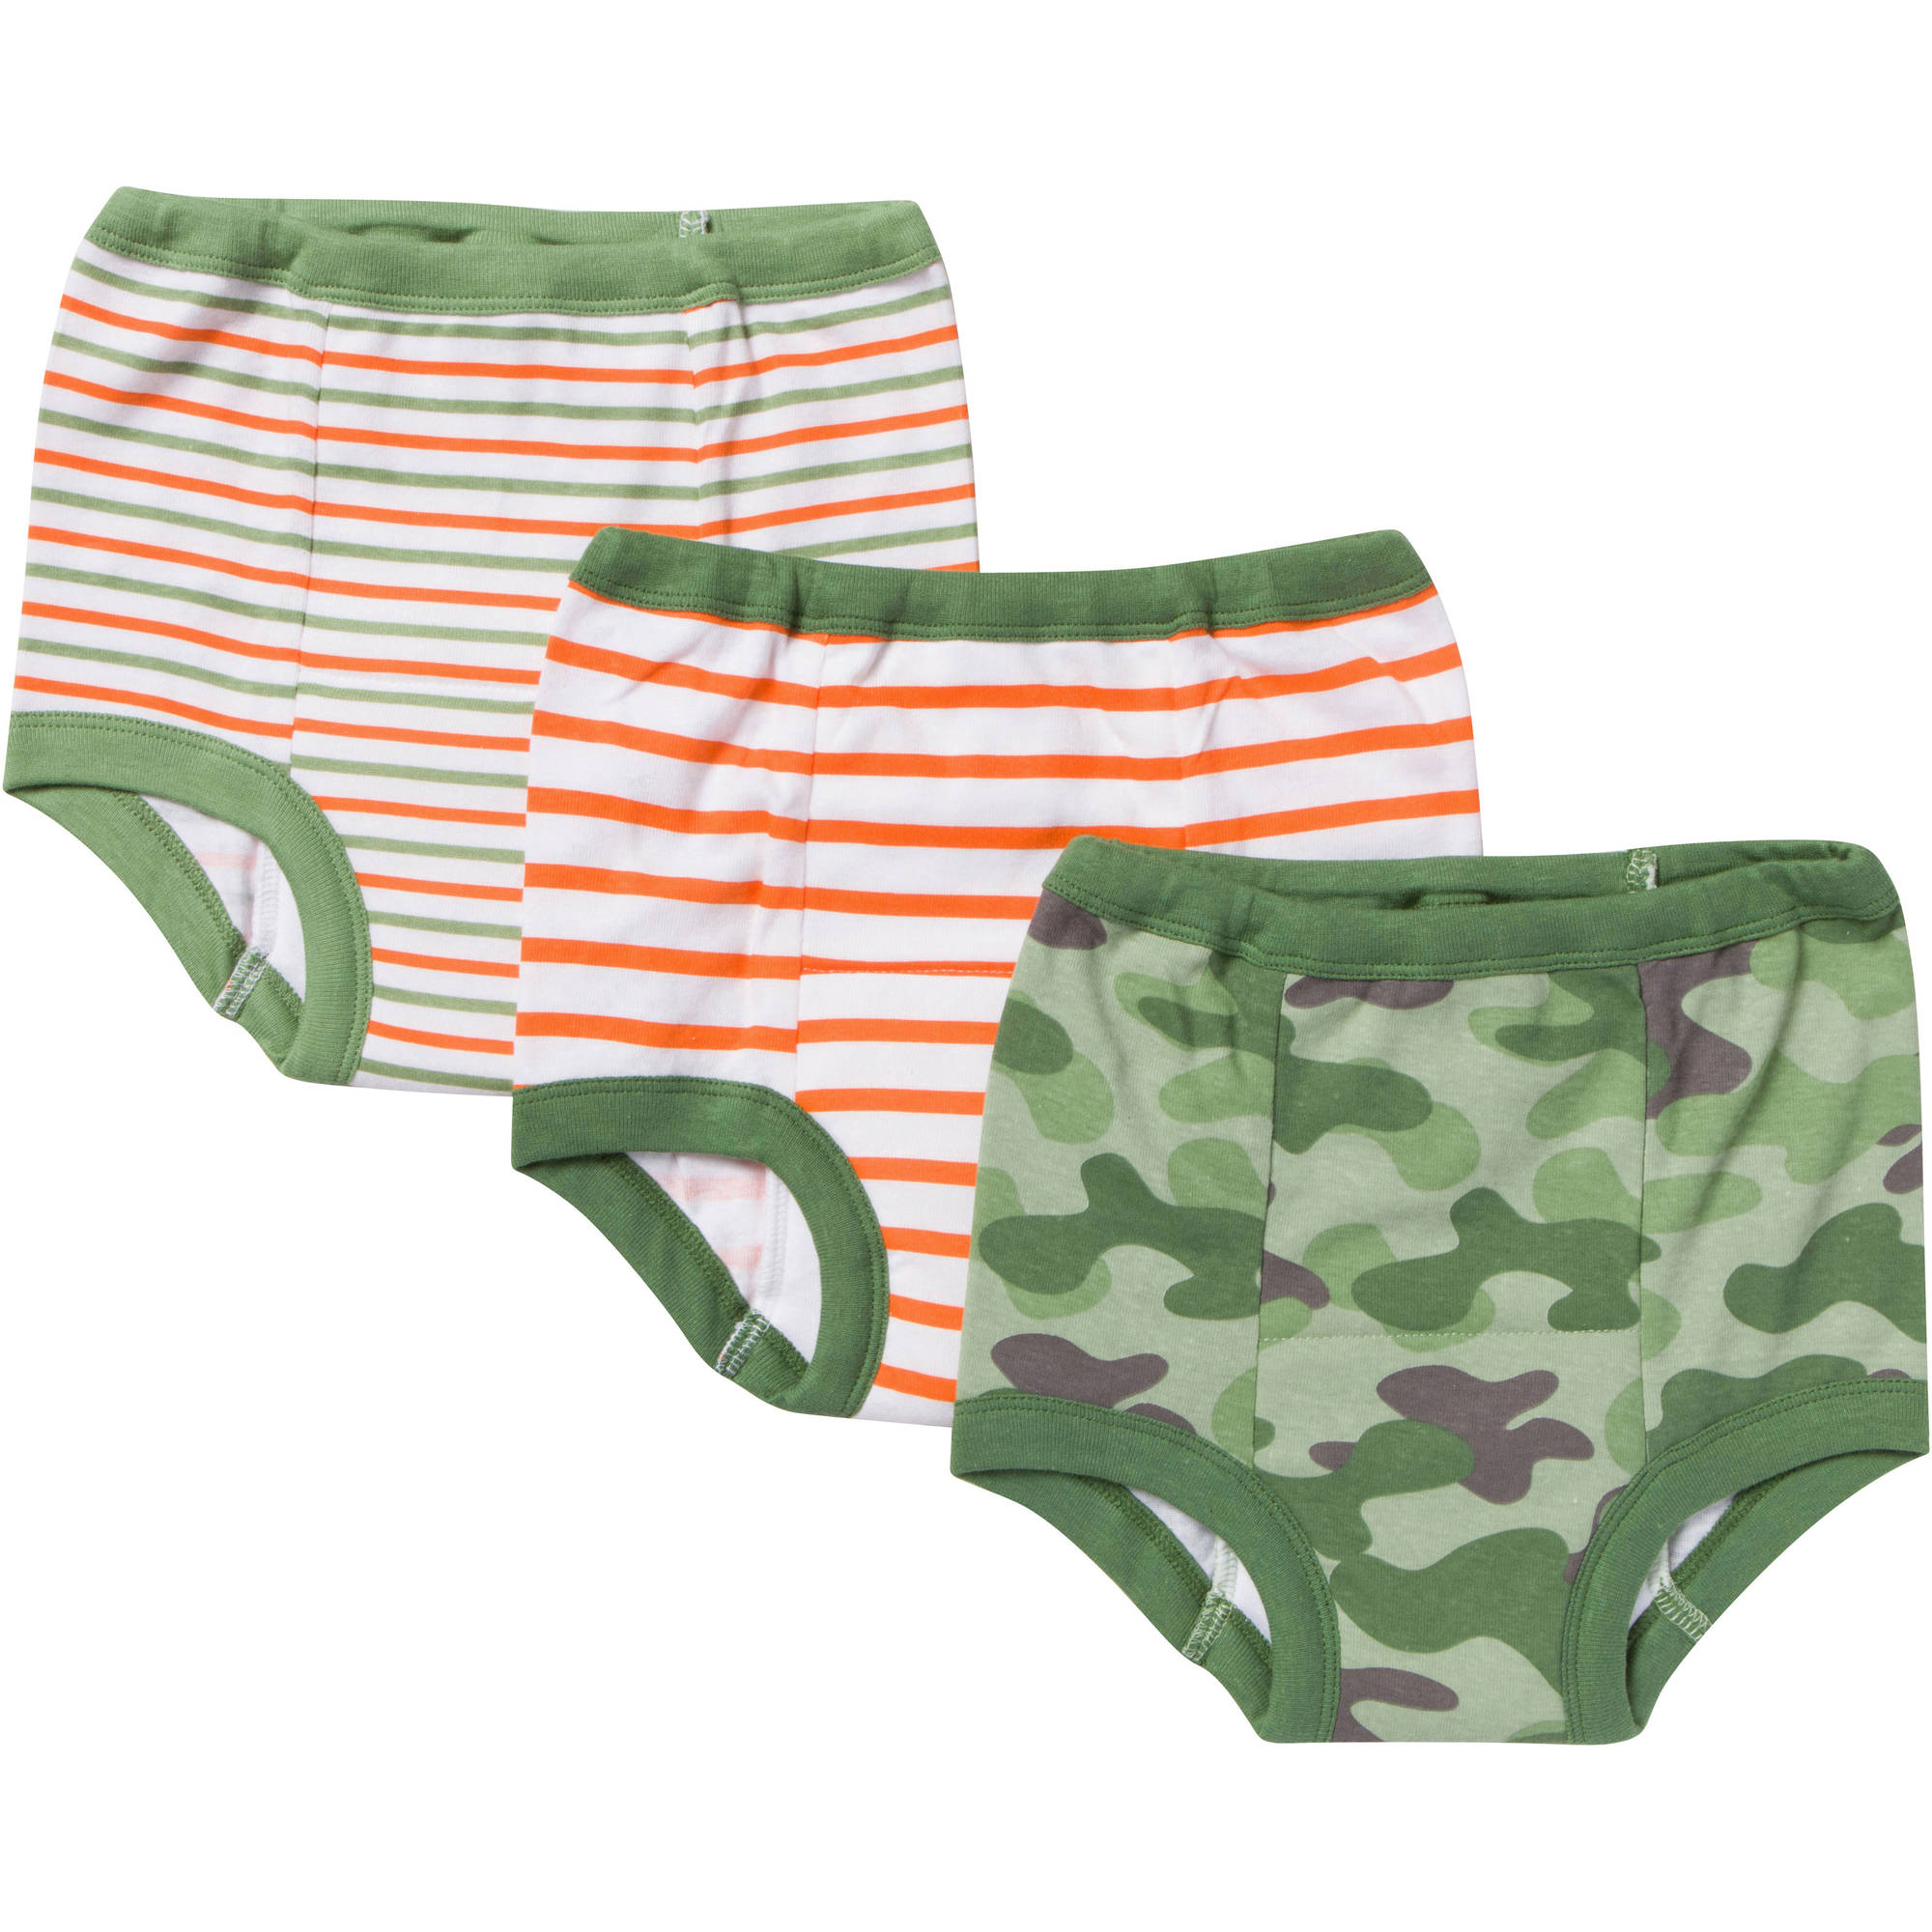 Gerber Toddler Boy's Assorted Training Pants, 3-Pack